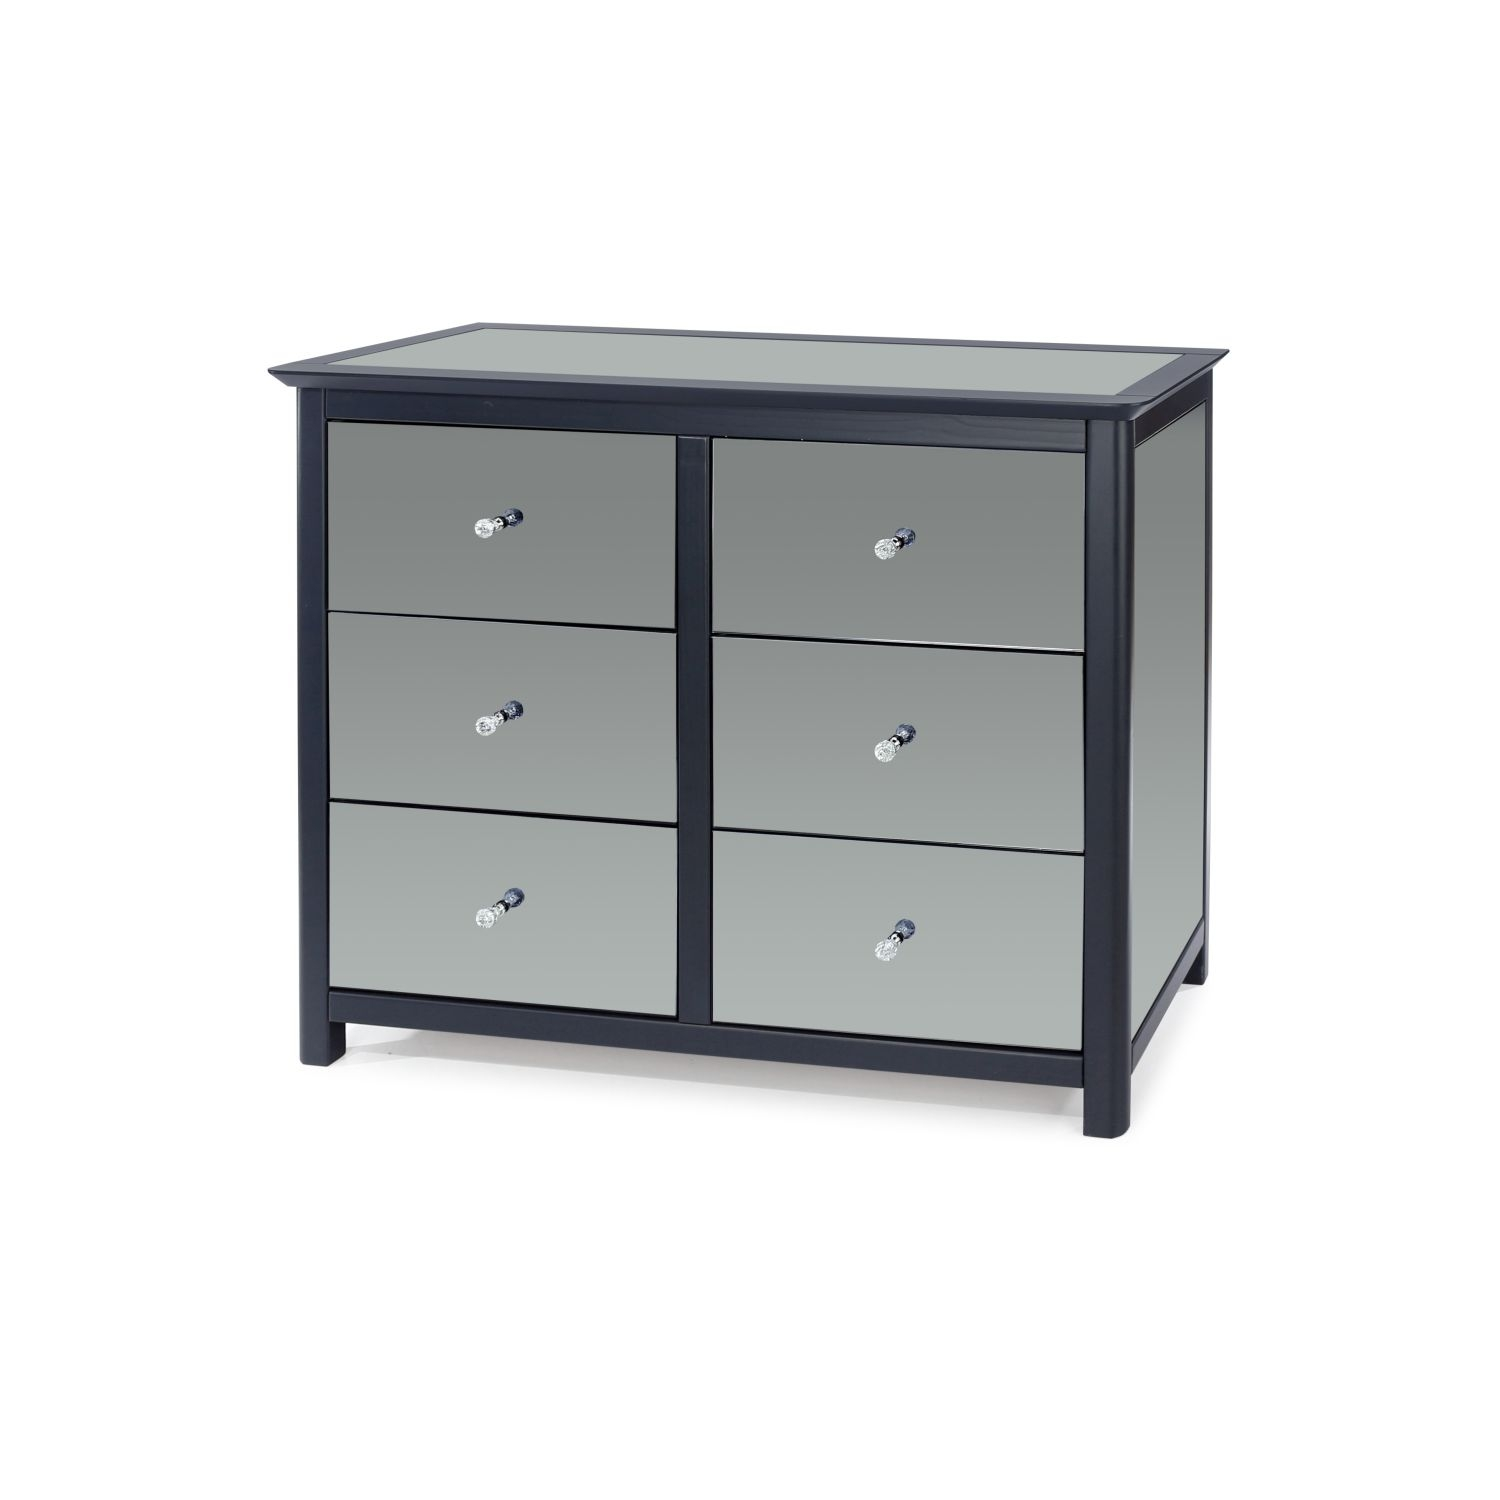 Image of Casa Aiva 3+3 Drawer Wide Chest